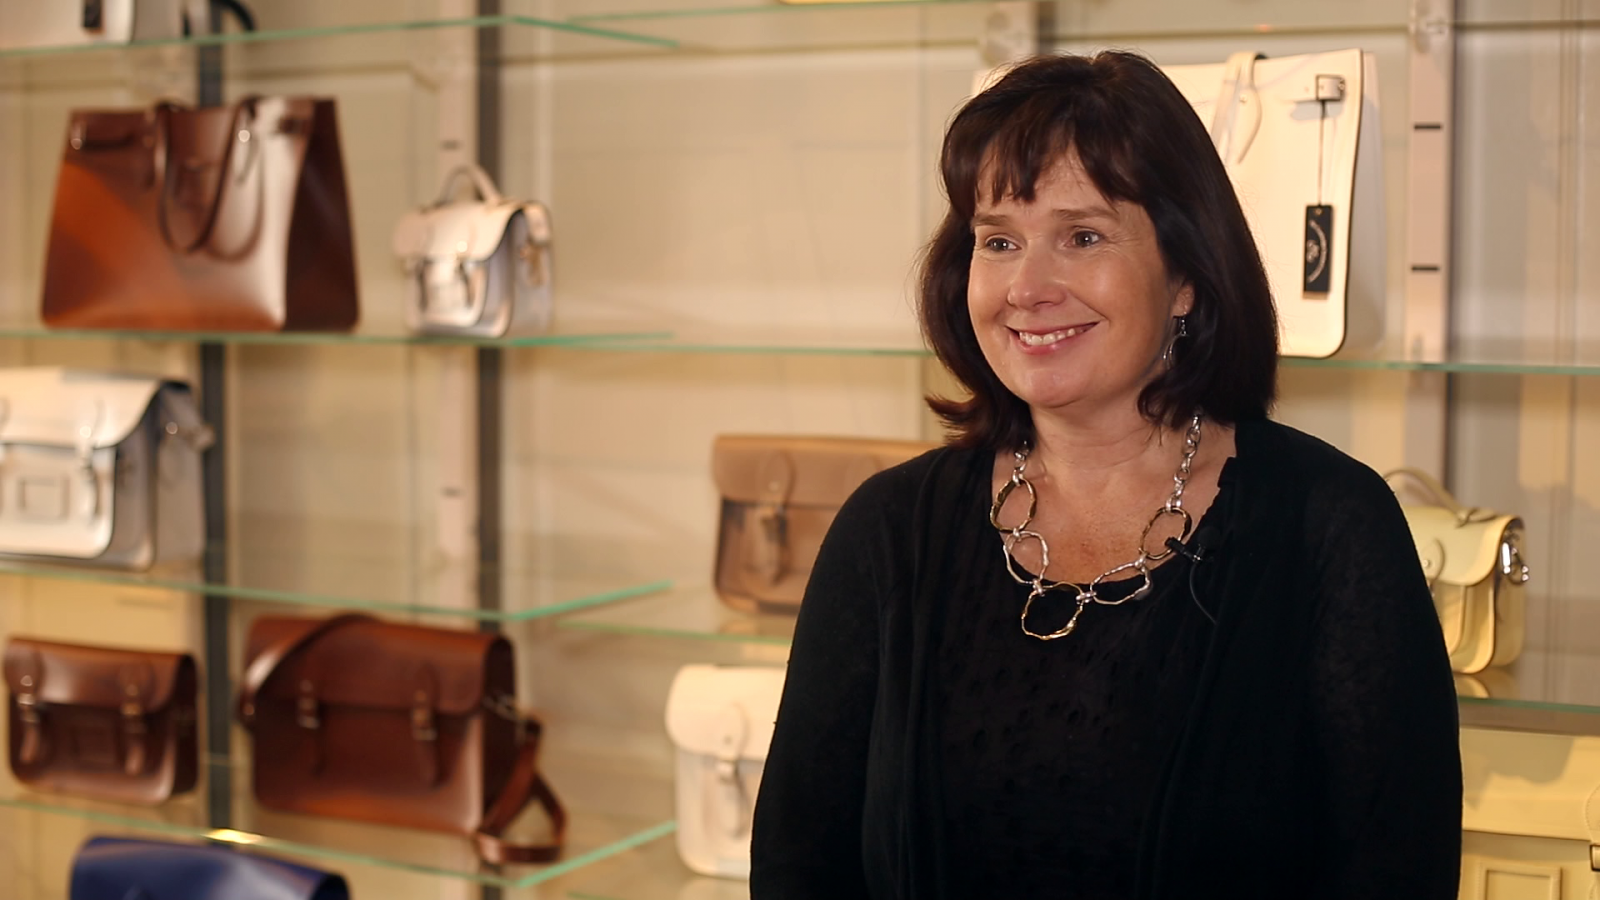 Cambridge Satchel Company Founder: Strict Accounting is Just as Important as Creativity